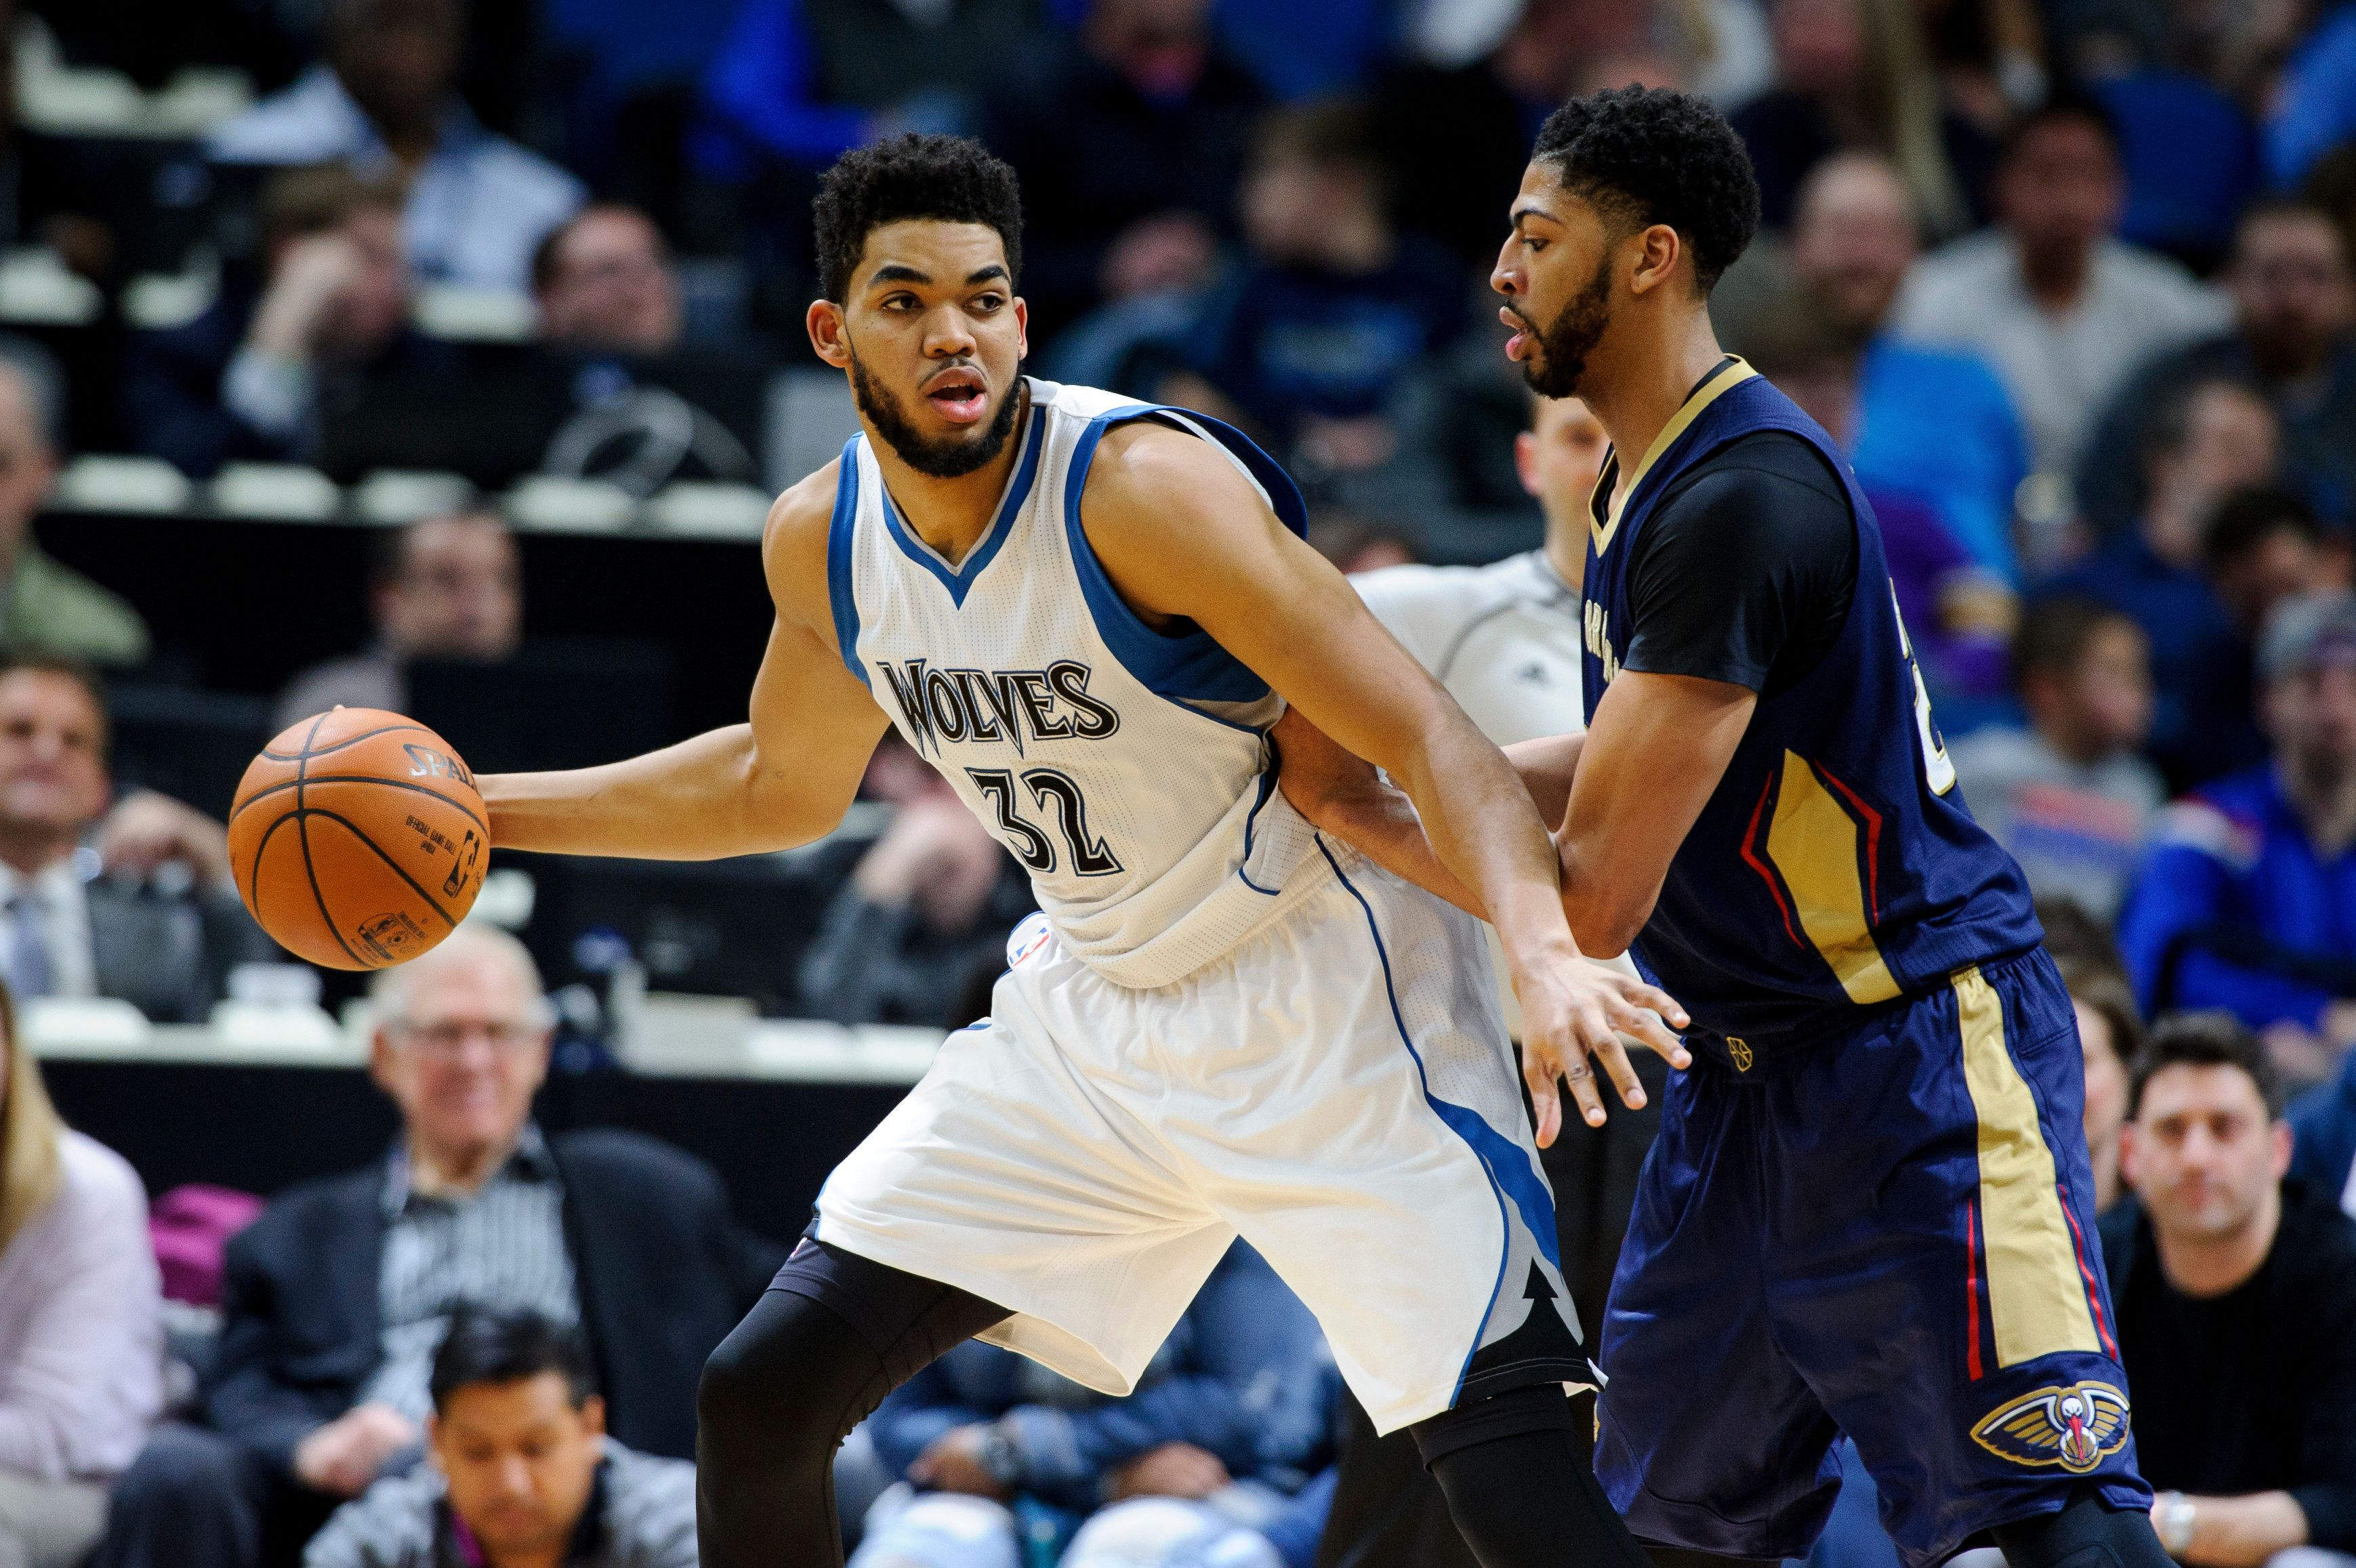 MINNEAPOLIS, MN - FEBRUARY 10: Anthony Davis #23 of the New Orleans Pelicans defends against Karl-Anthony Towns #32 of the Minnesota Timberwolves during the game on February 10, 2017 at the Target Center in Minneapolis, Minnesota. NOTE TO USER: User expressly acknowledges and agrees that, by downloading and or using this Photograph, user is consenting to the terms and conditions of the Getty Images License Agreement. (Photo by Hannah Foslien/Getty Images)